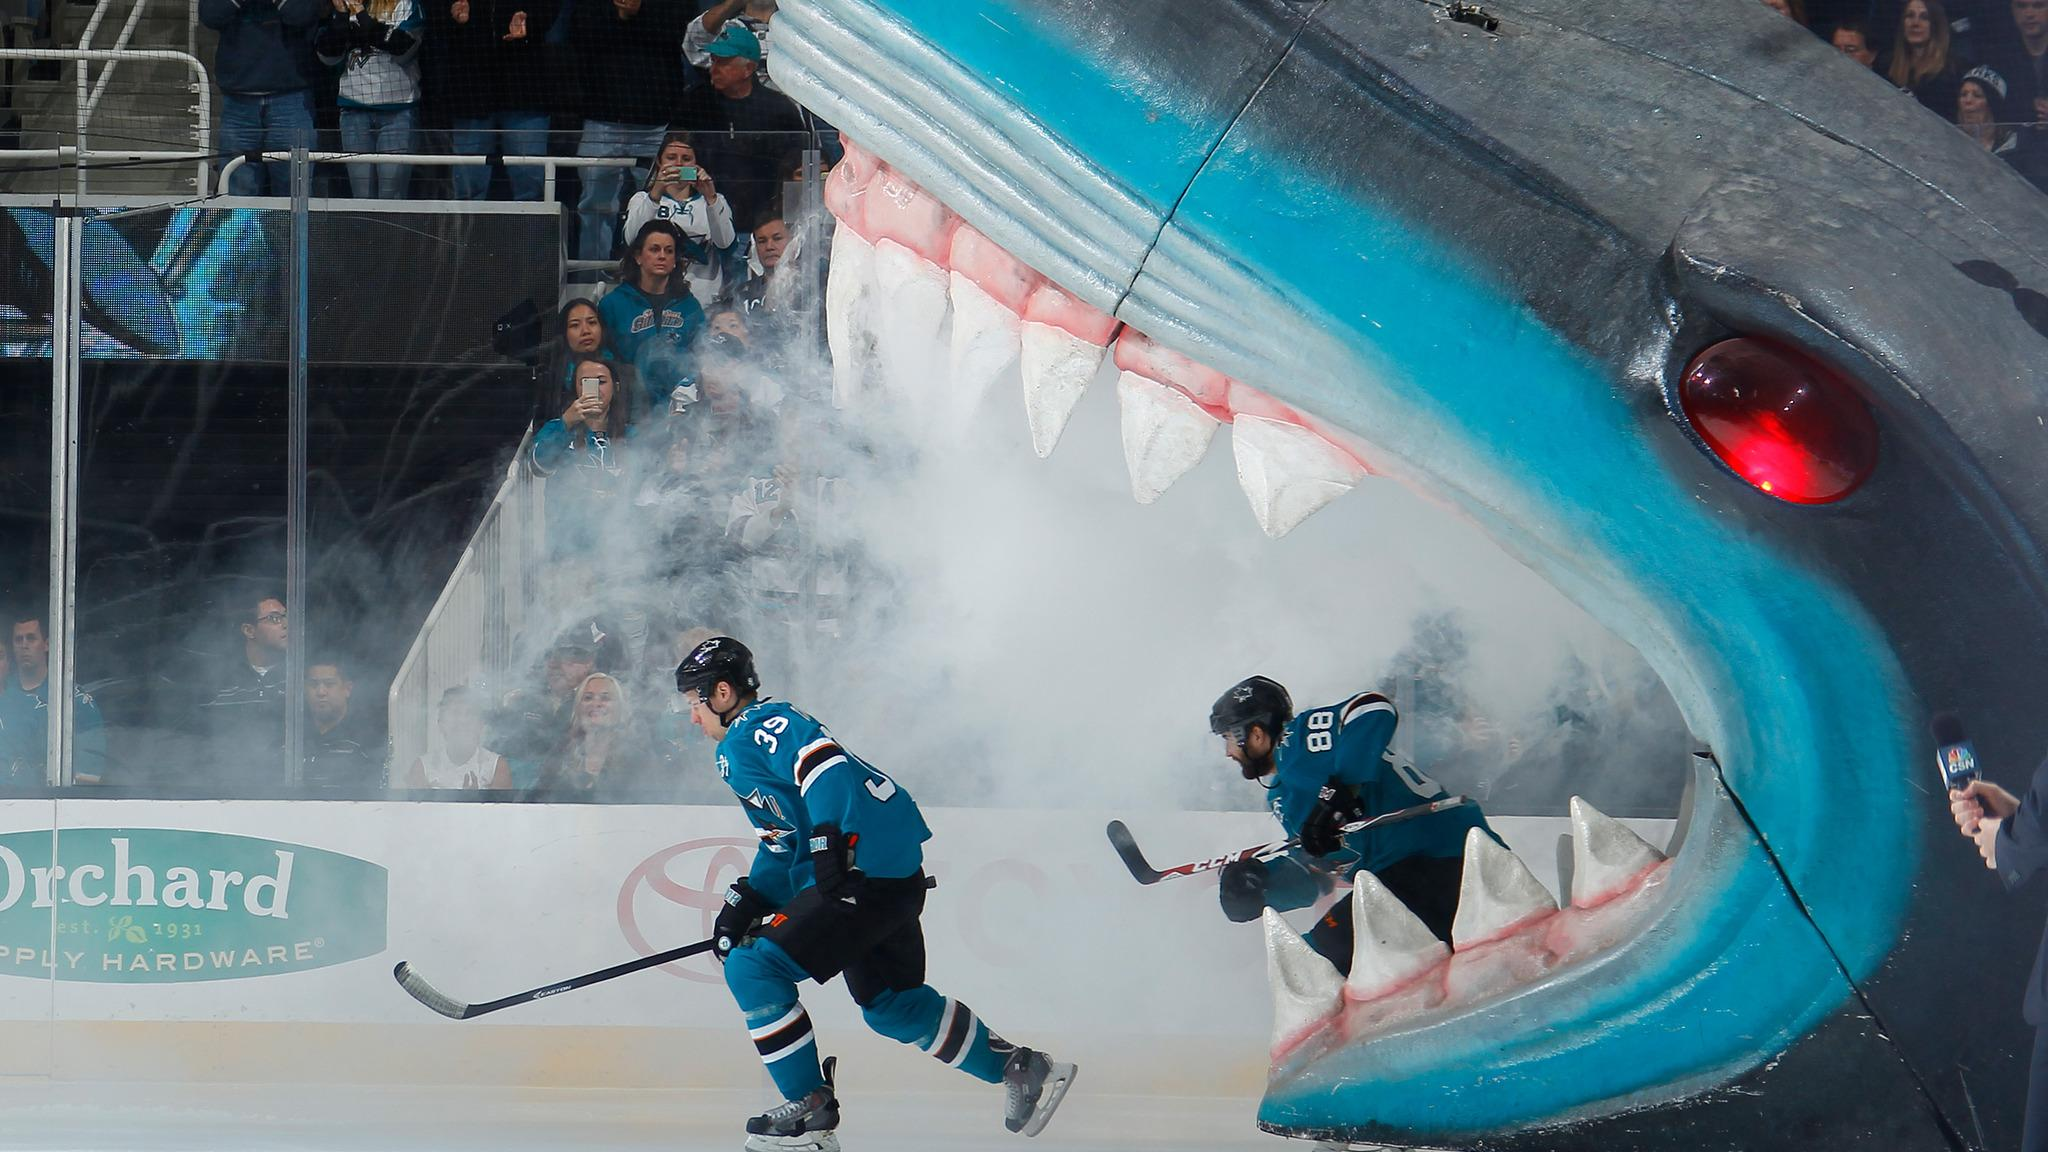 San Jose Sharks vs. Nashville Predators